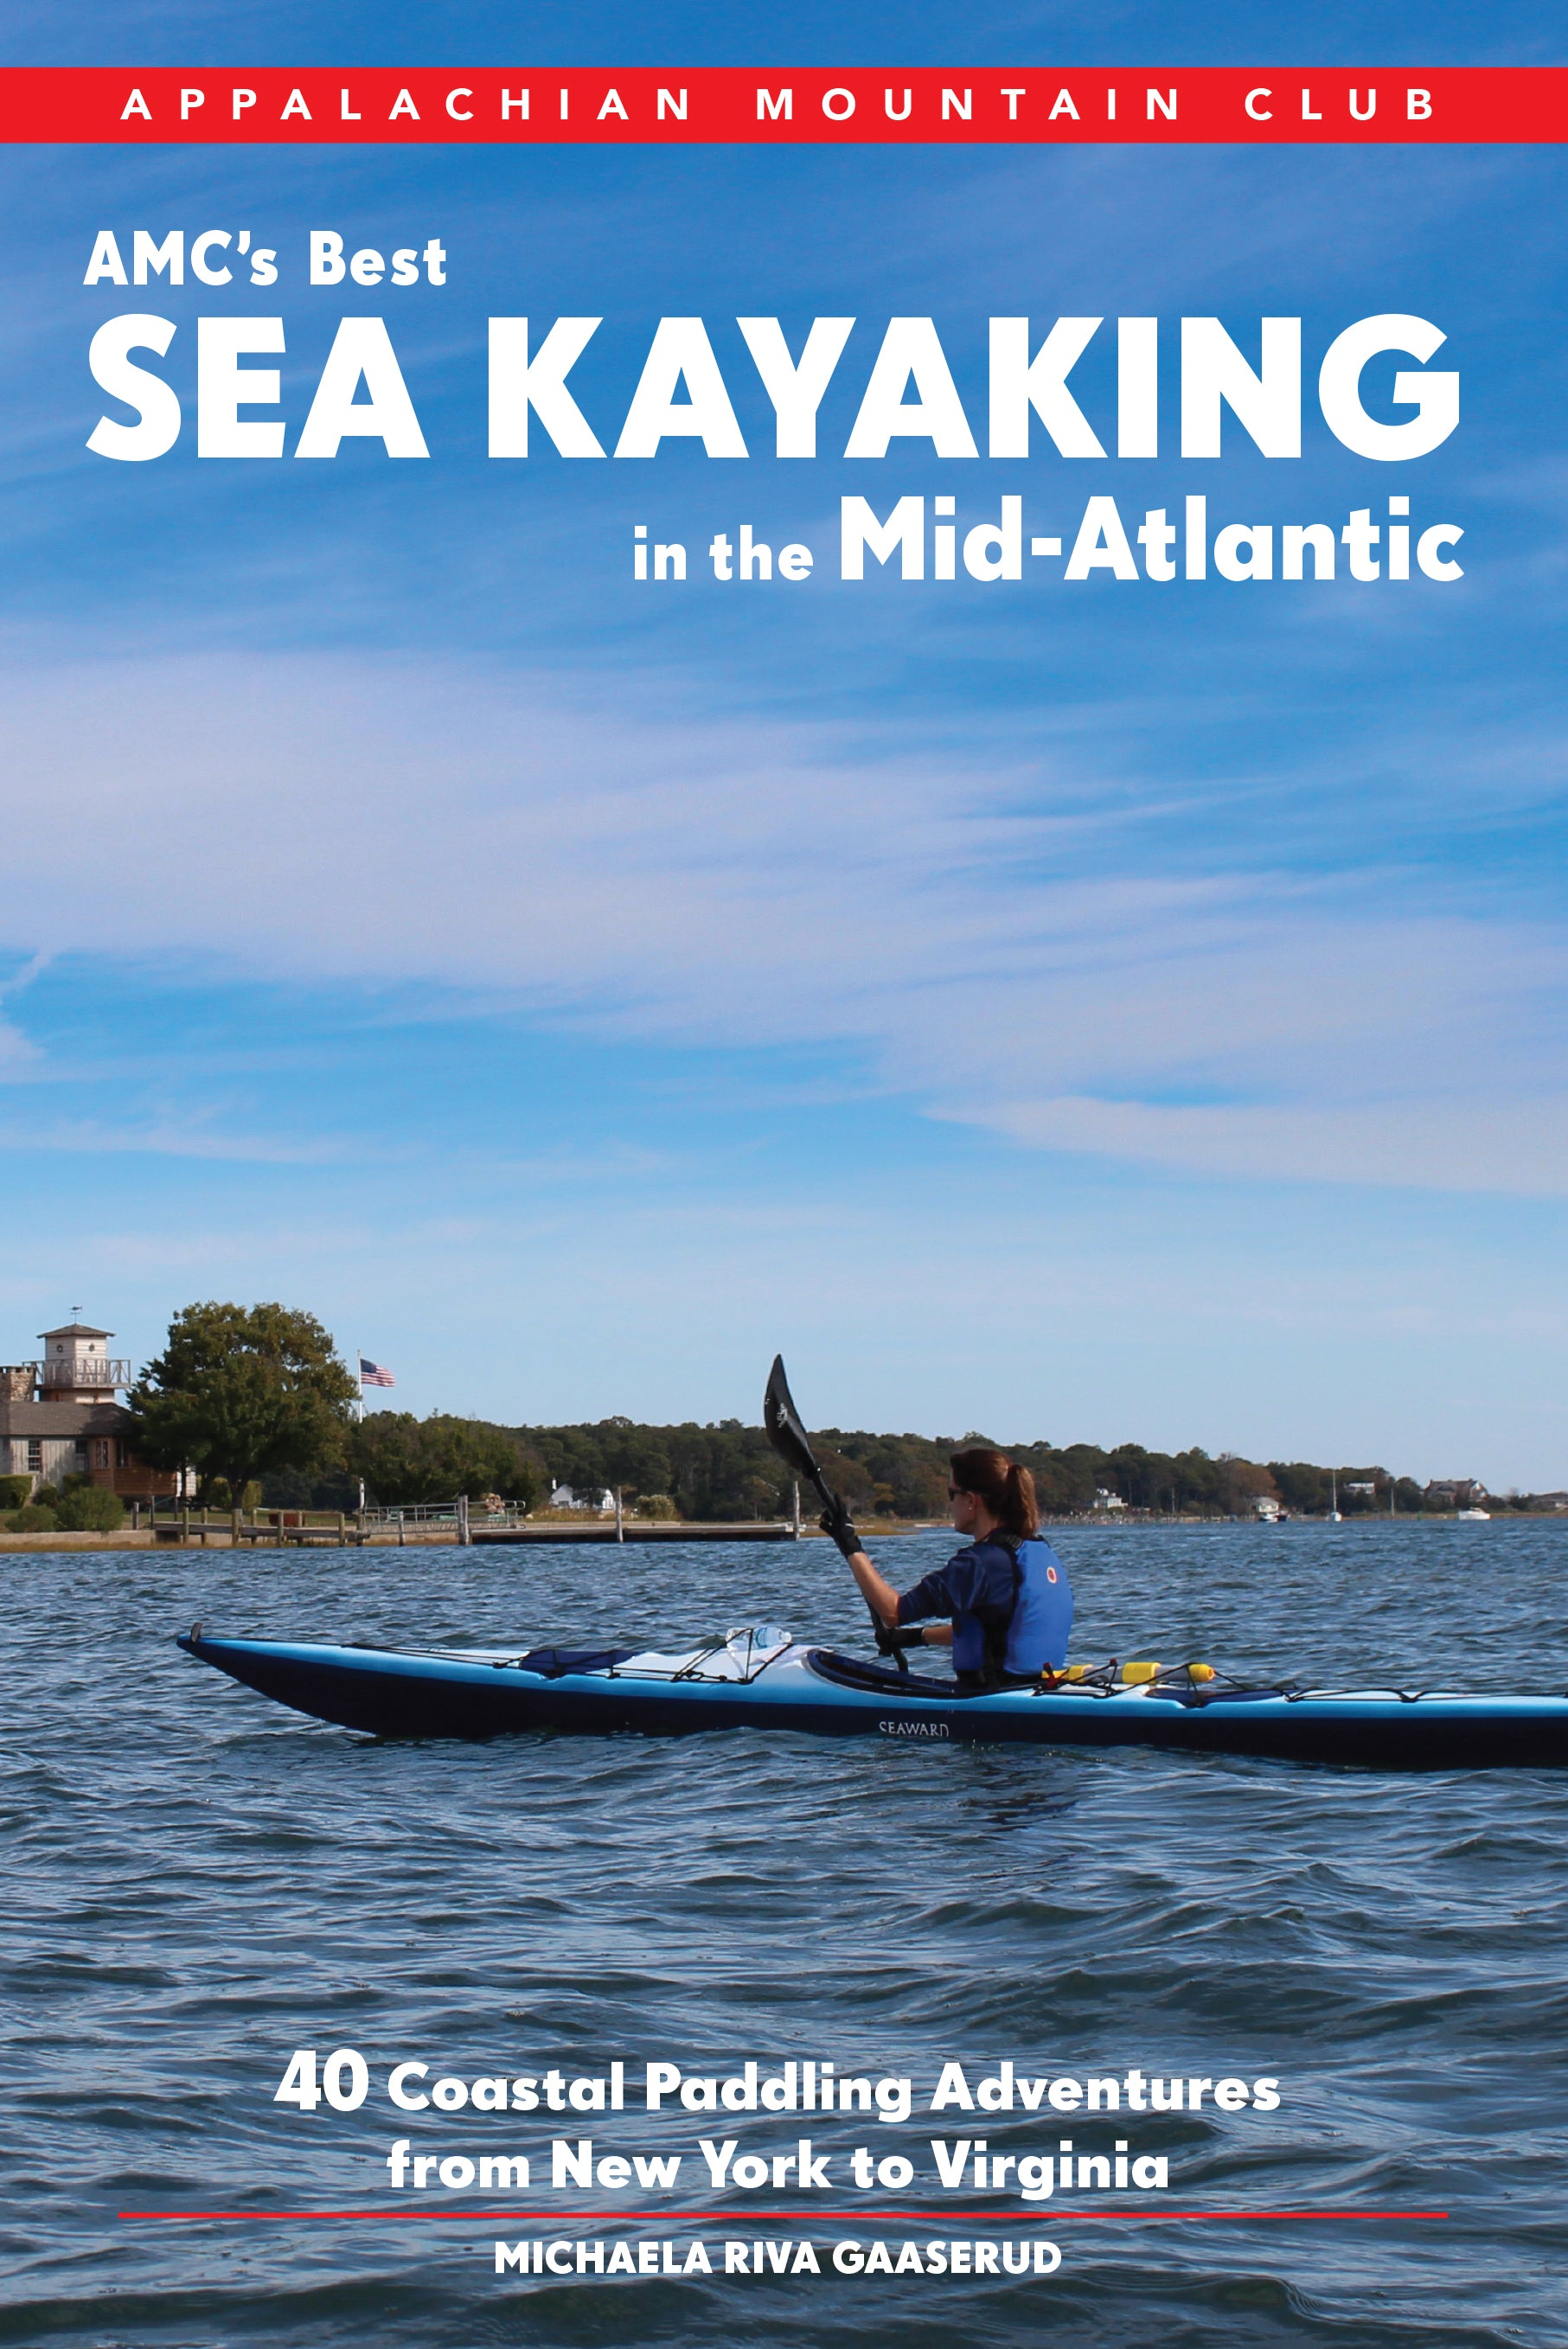 AMC's Best Sea Kayaking in the Mid-Atlantic